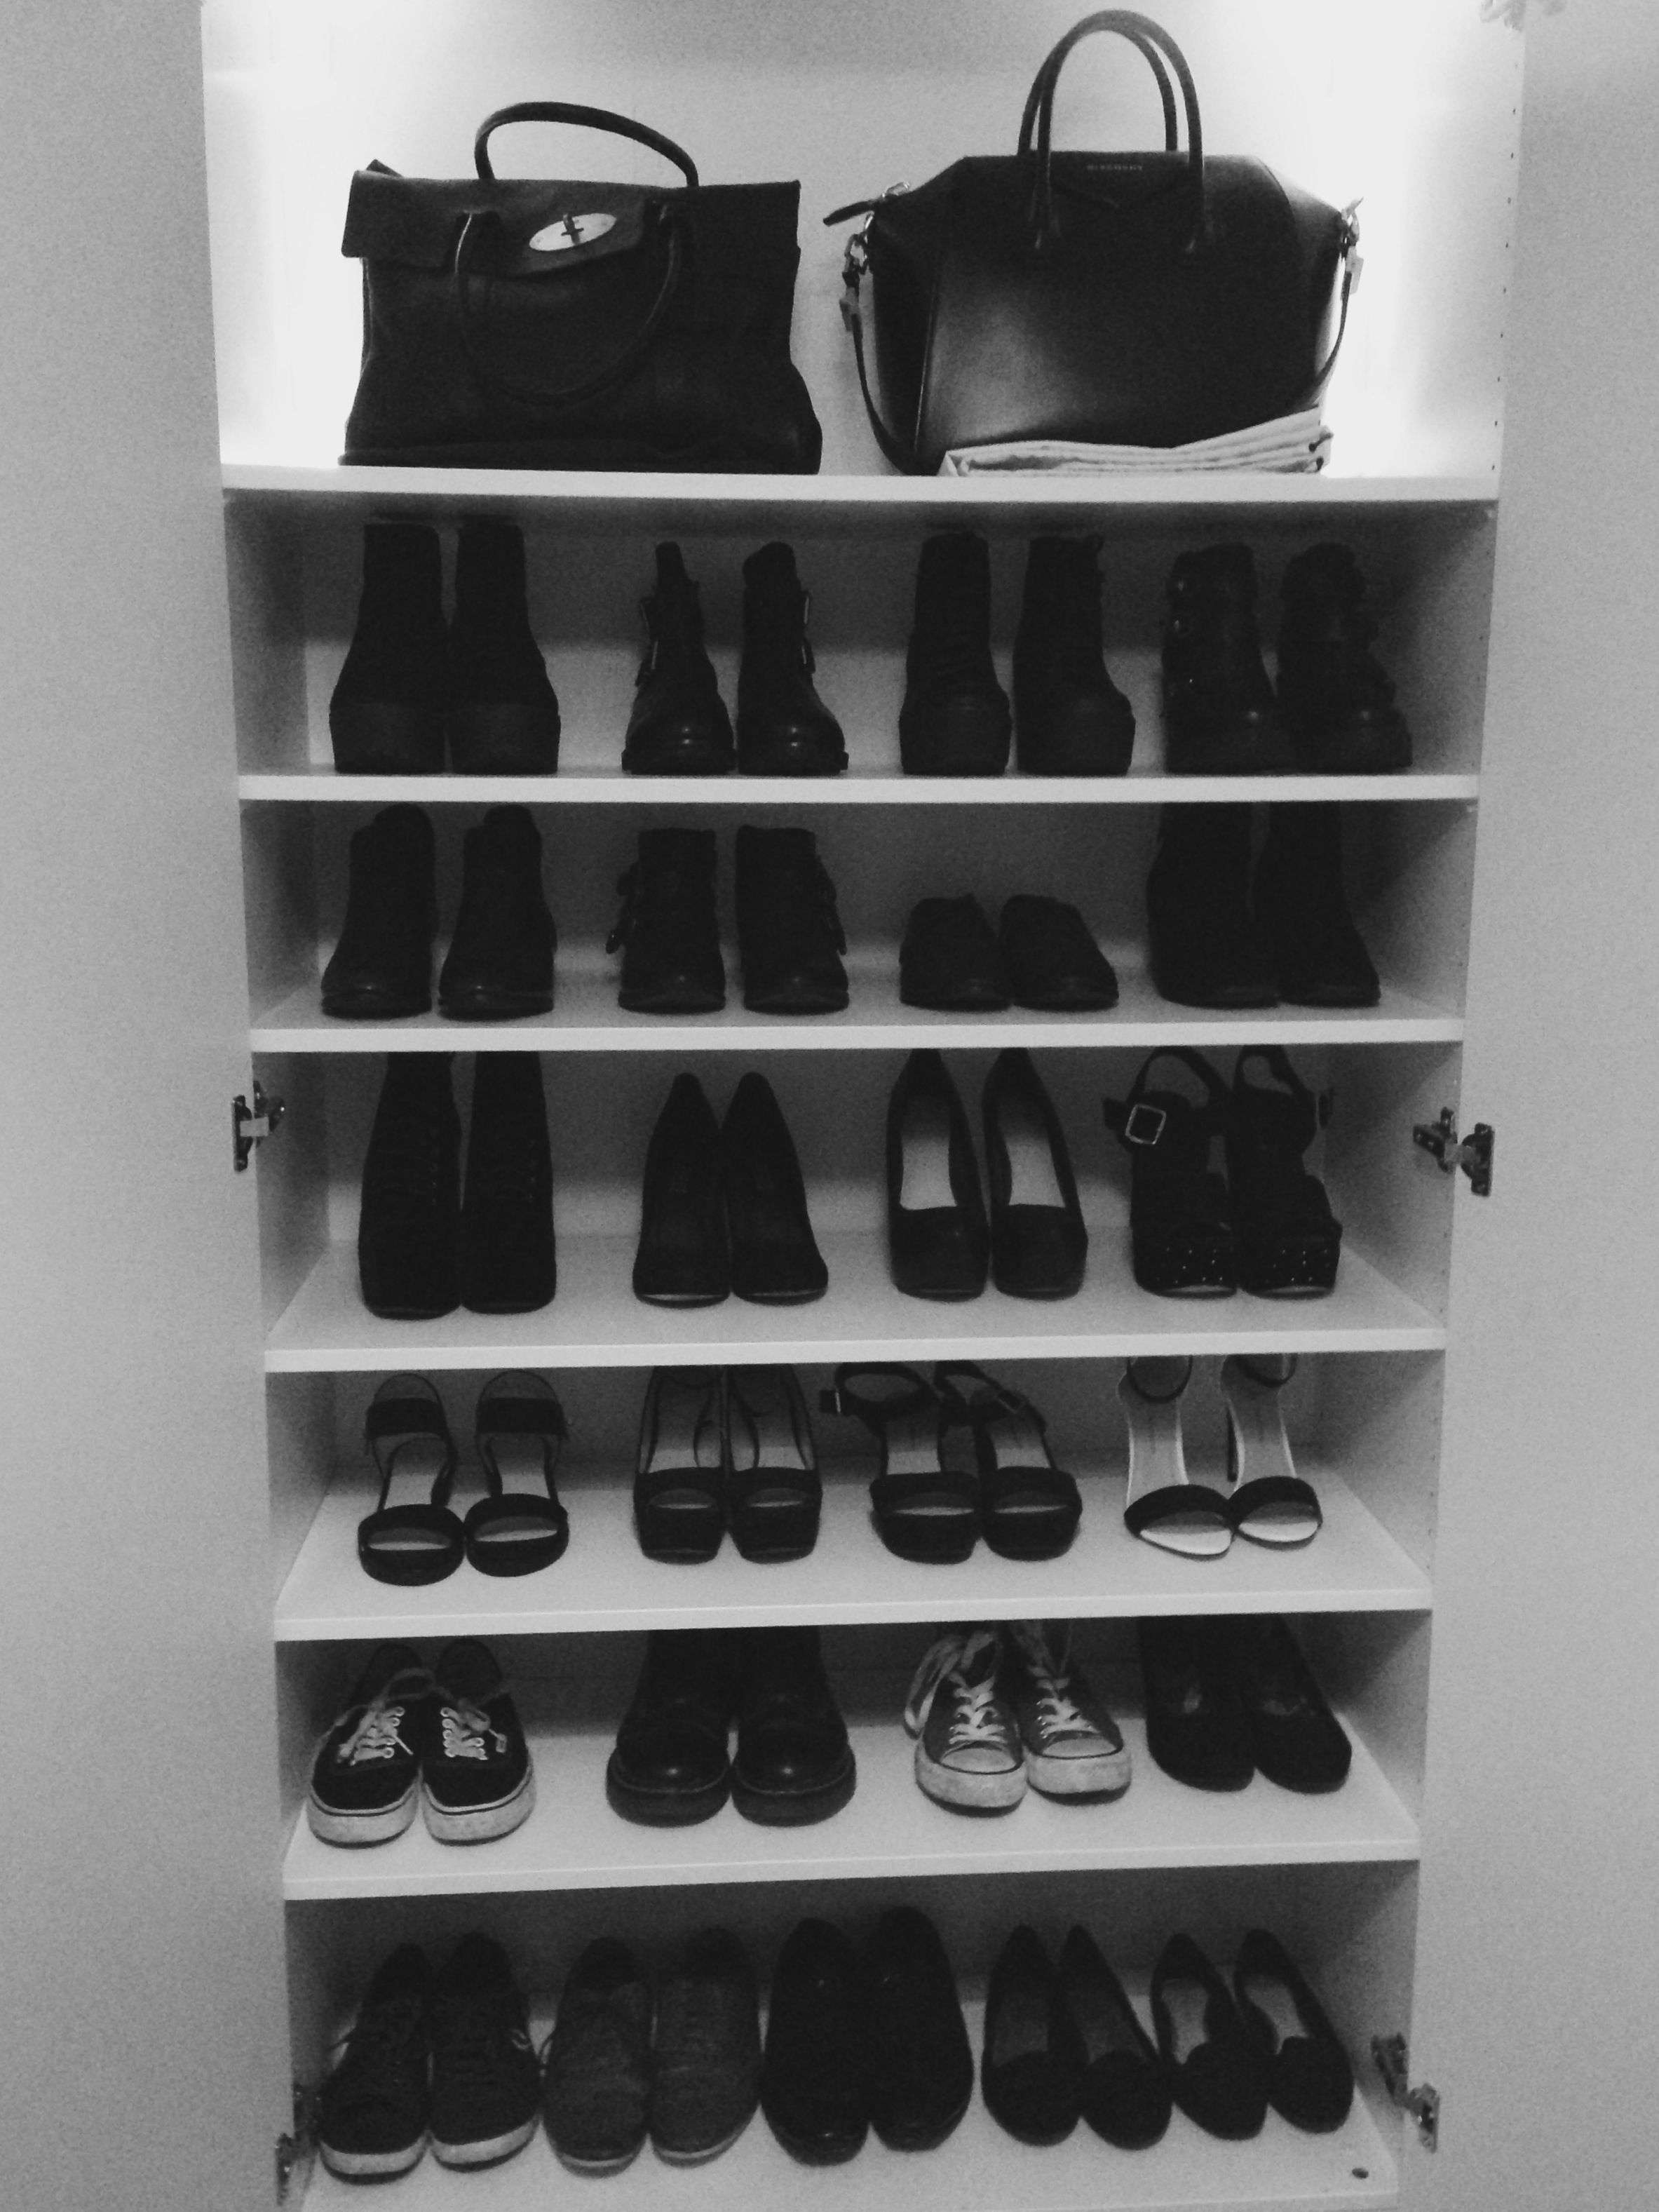 f45ab8a902e How i store my favourite shoes and bags- Ikea Pax wardrobe in white ...